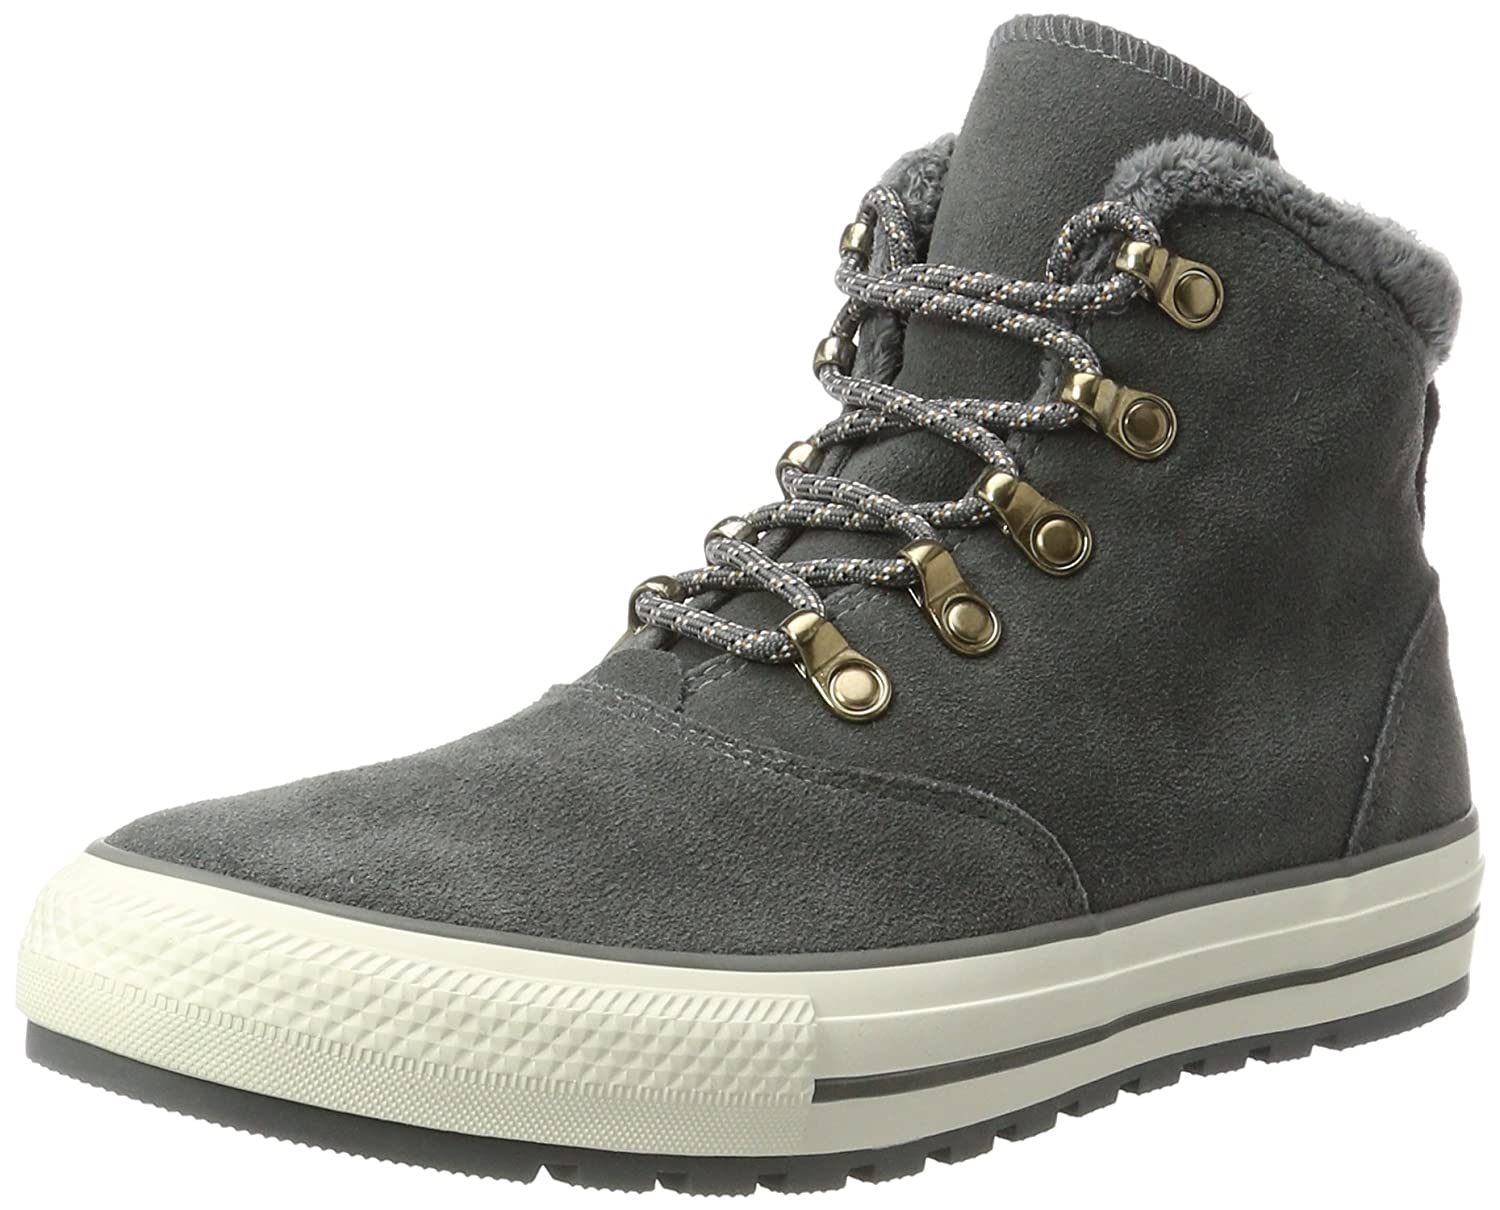 6c8284384b0 Converse CT All Star High Top Women's Ember Boots Thunder/Egret 557934c